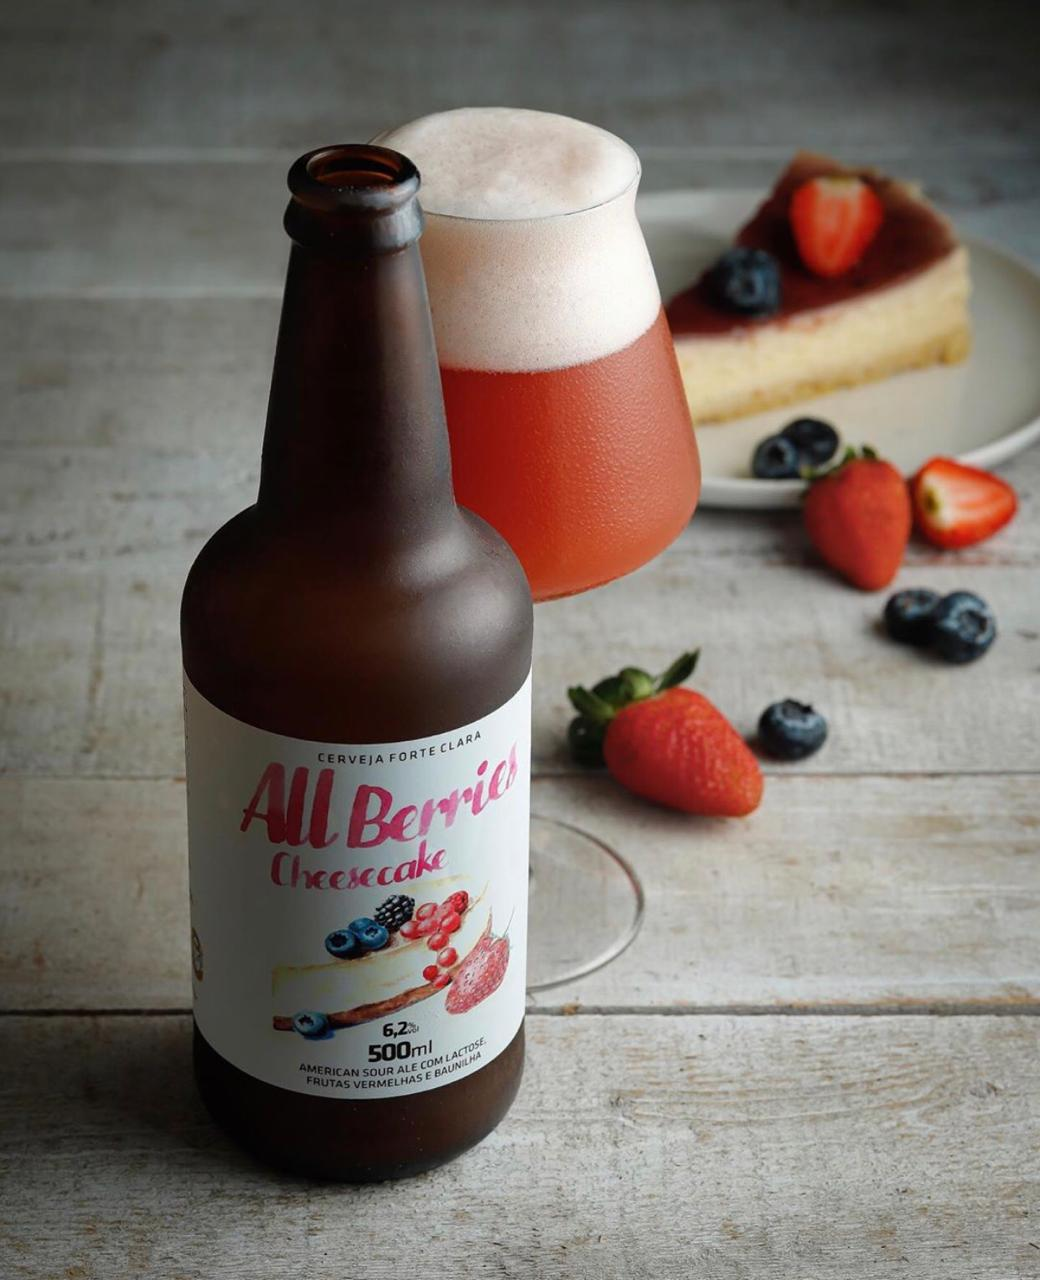 5 Elementos All Berries Cheesecake American Sour Ale 500ml